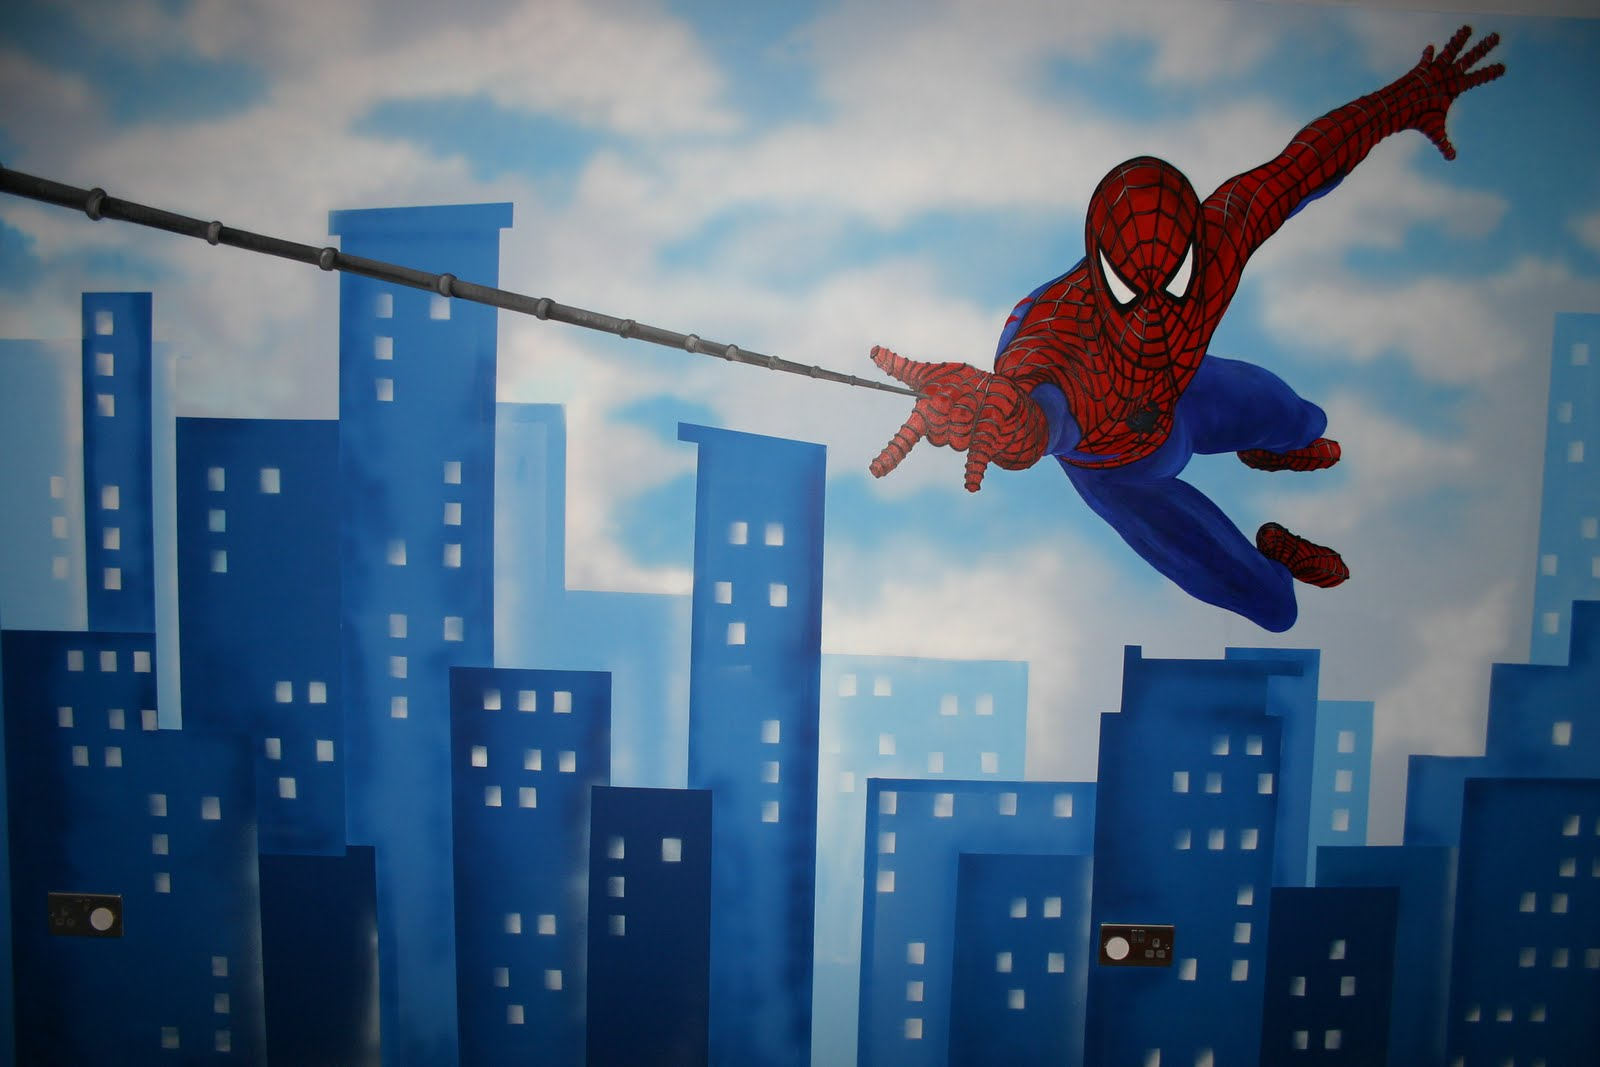 Mural Designs The Muralist Spiderman Wall Mural